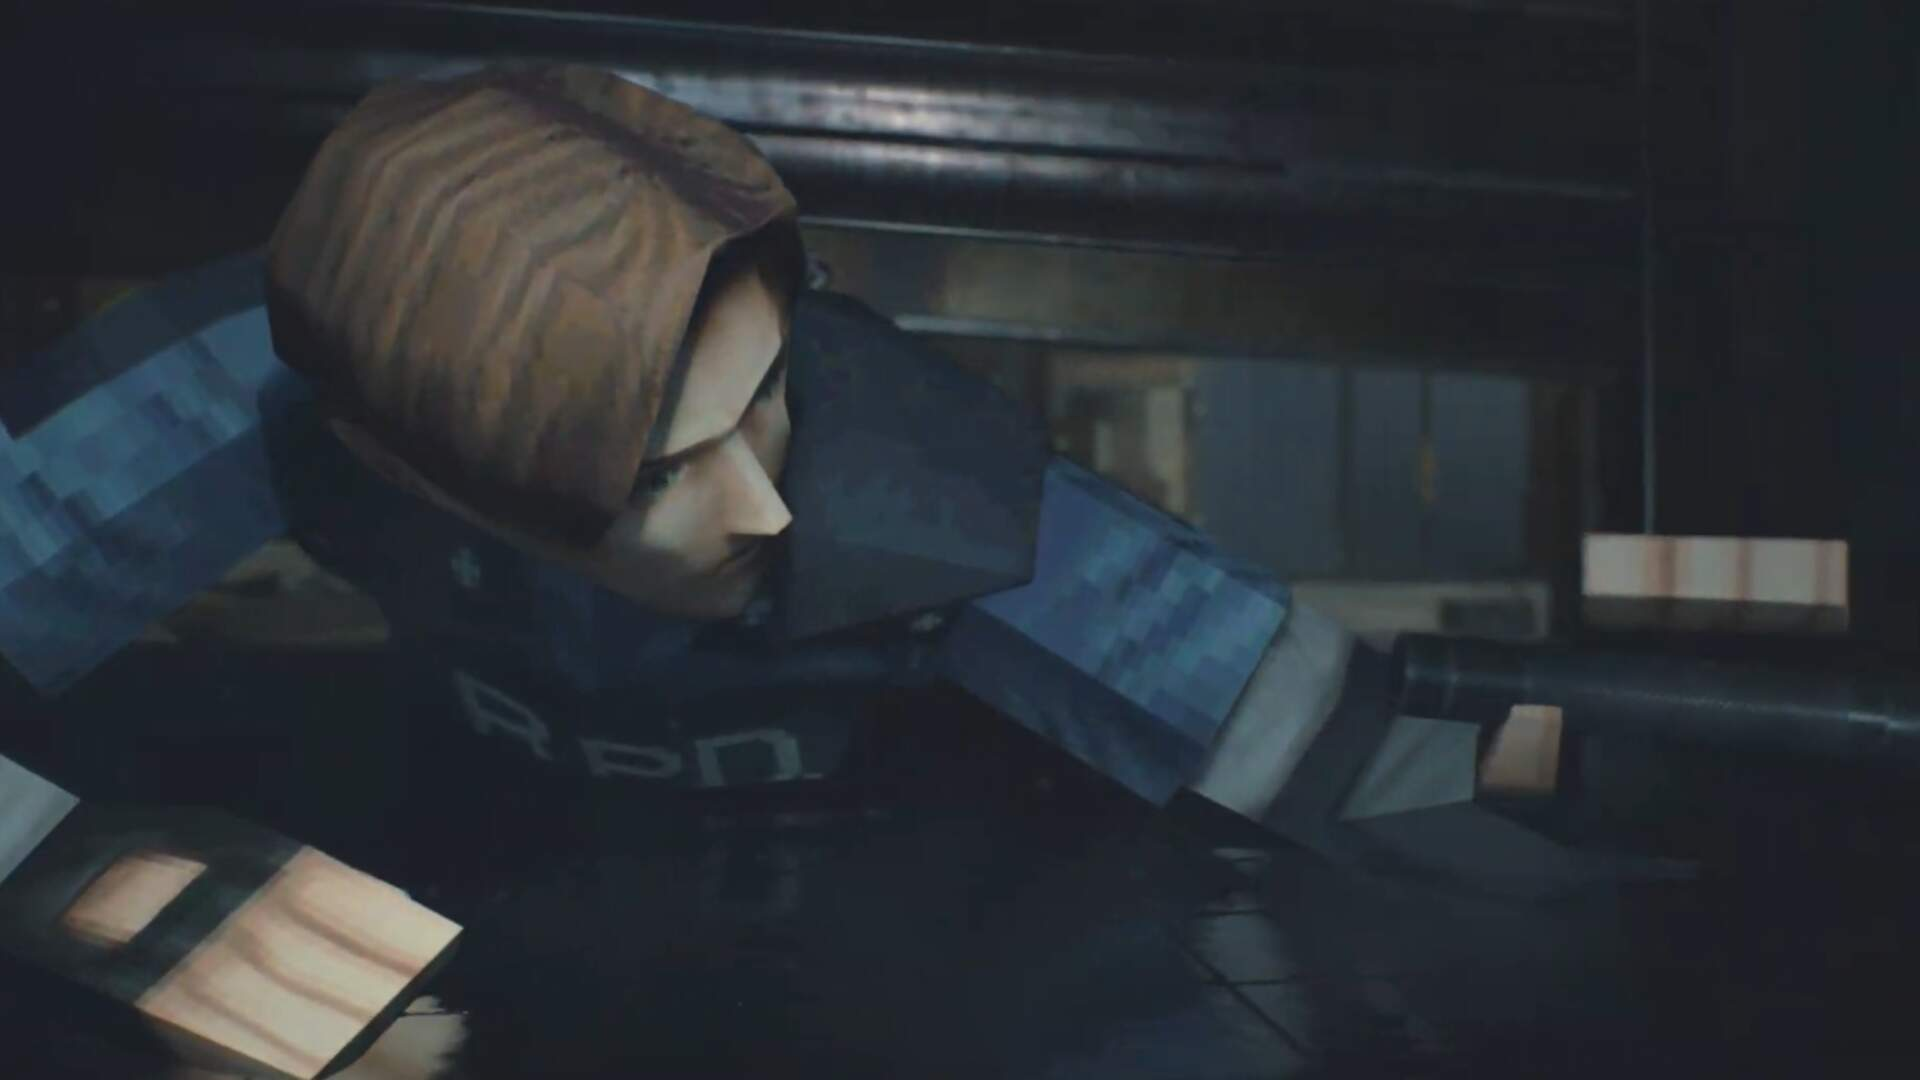 Original Resident Evil 2 N64 Port Developers are Livestreaming the Remake and Sharing War Stories